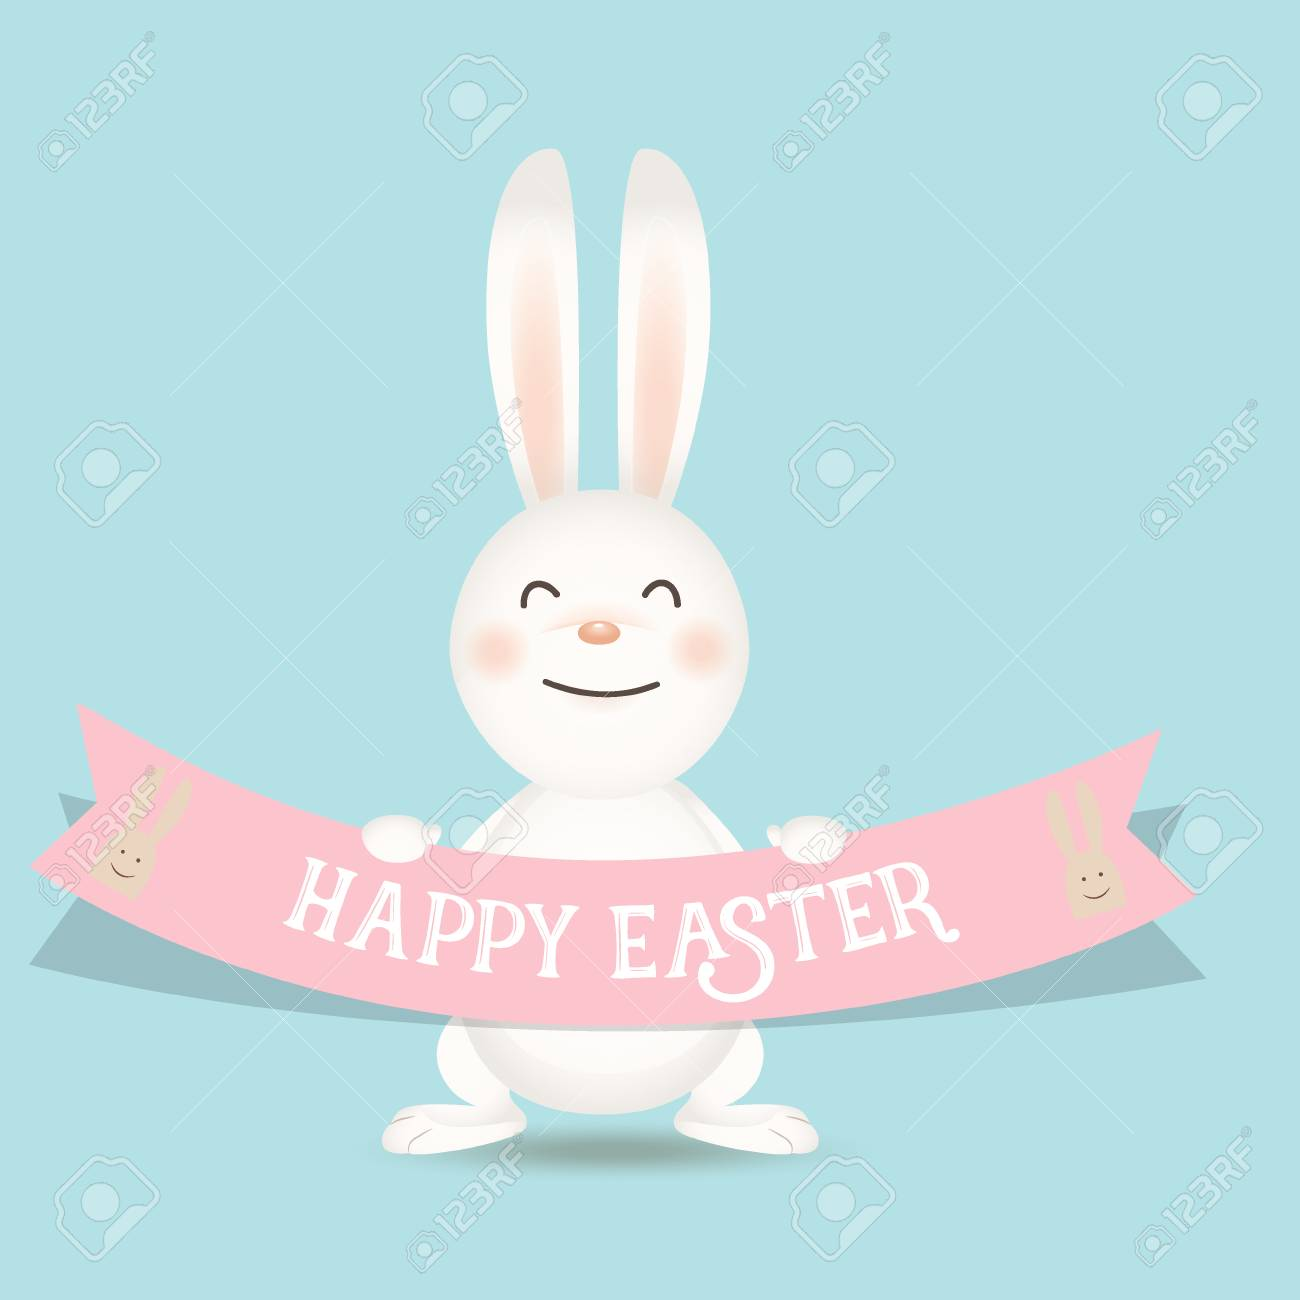 happy easter background design happy easter cards with easter